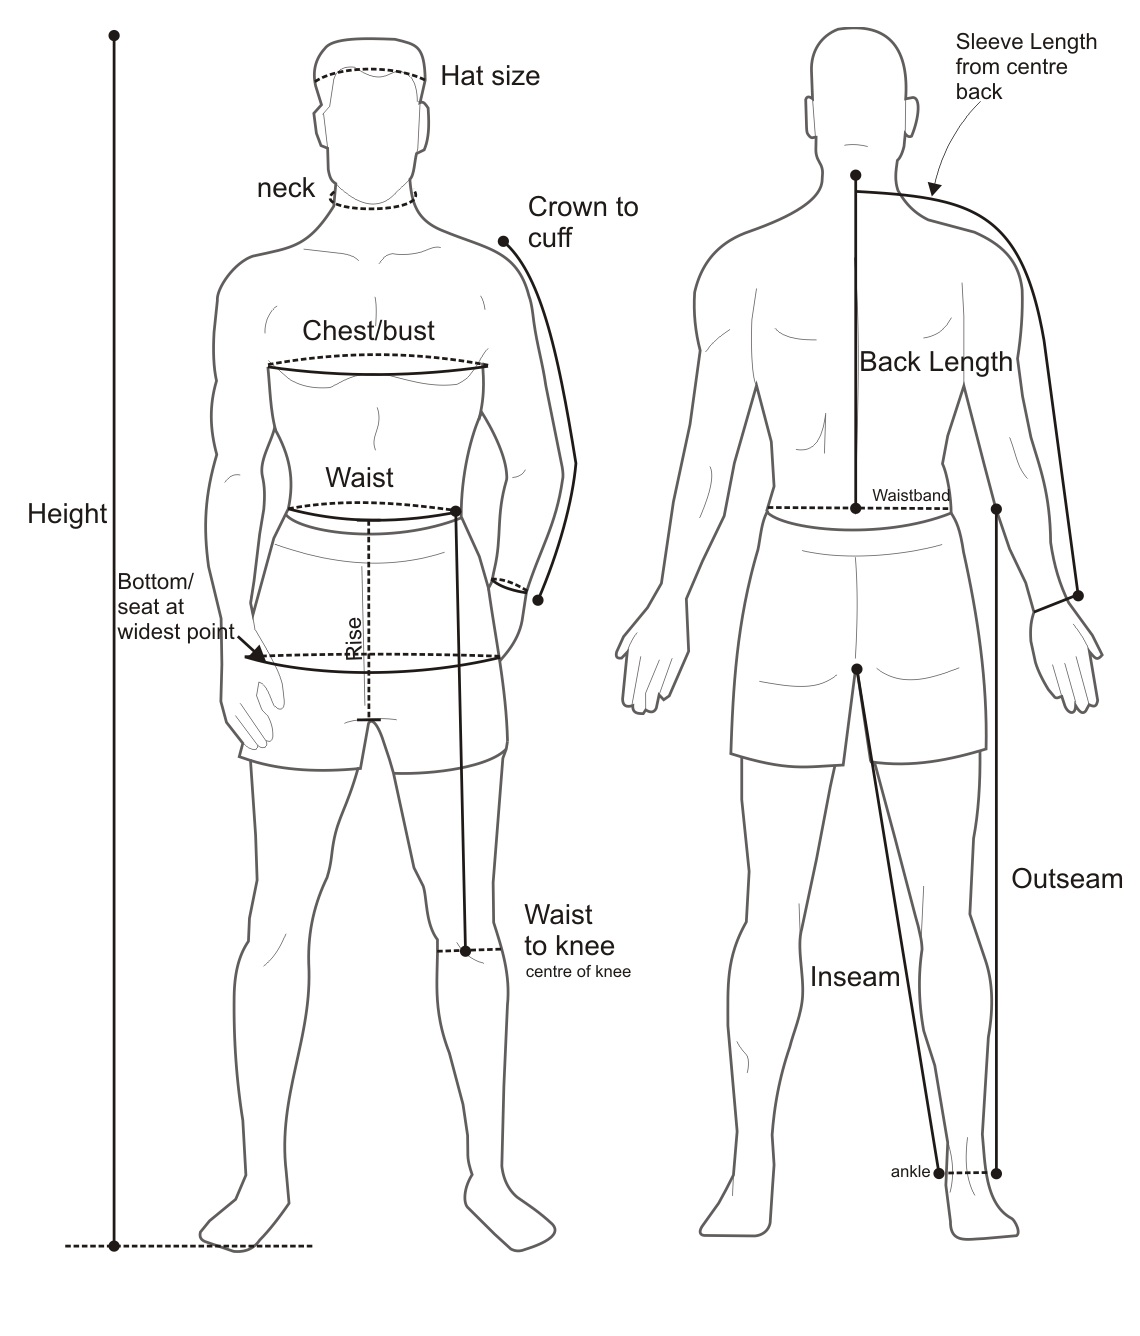 Male Body Anterior View Posterior View Body Parts Name Diagram